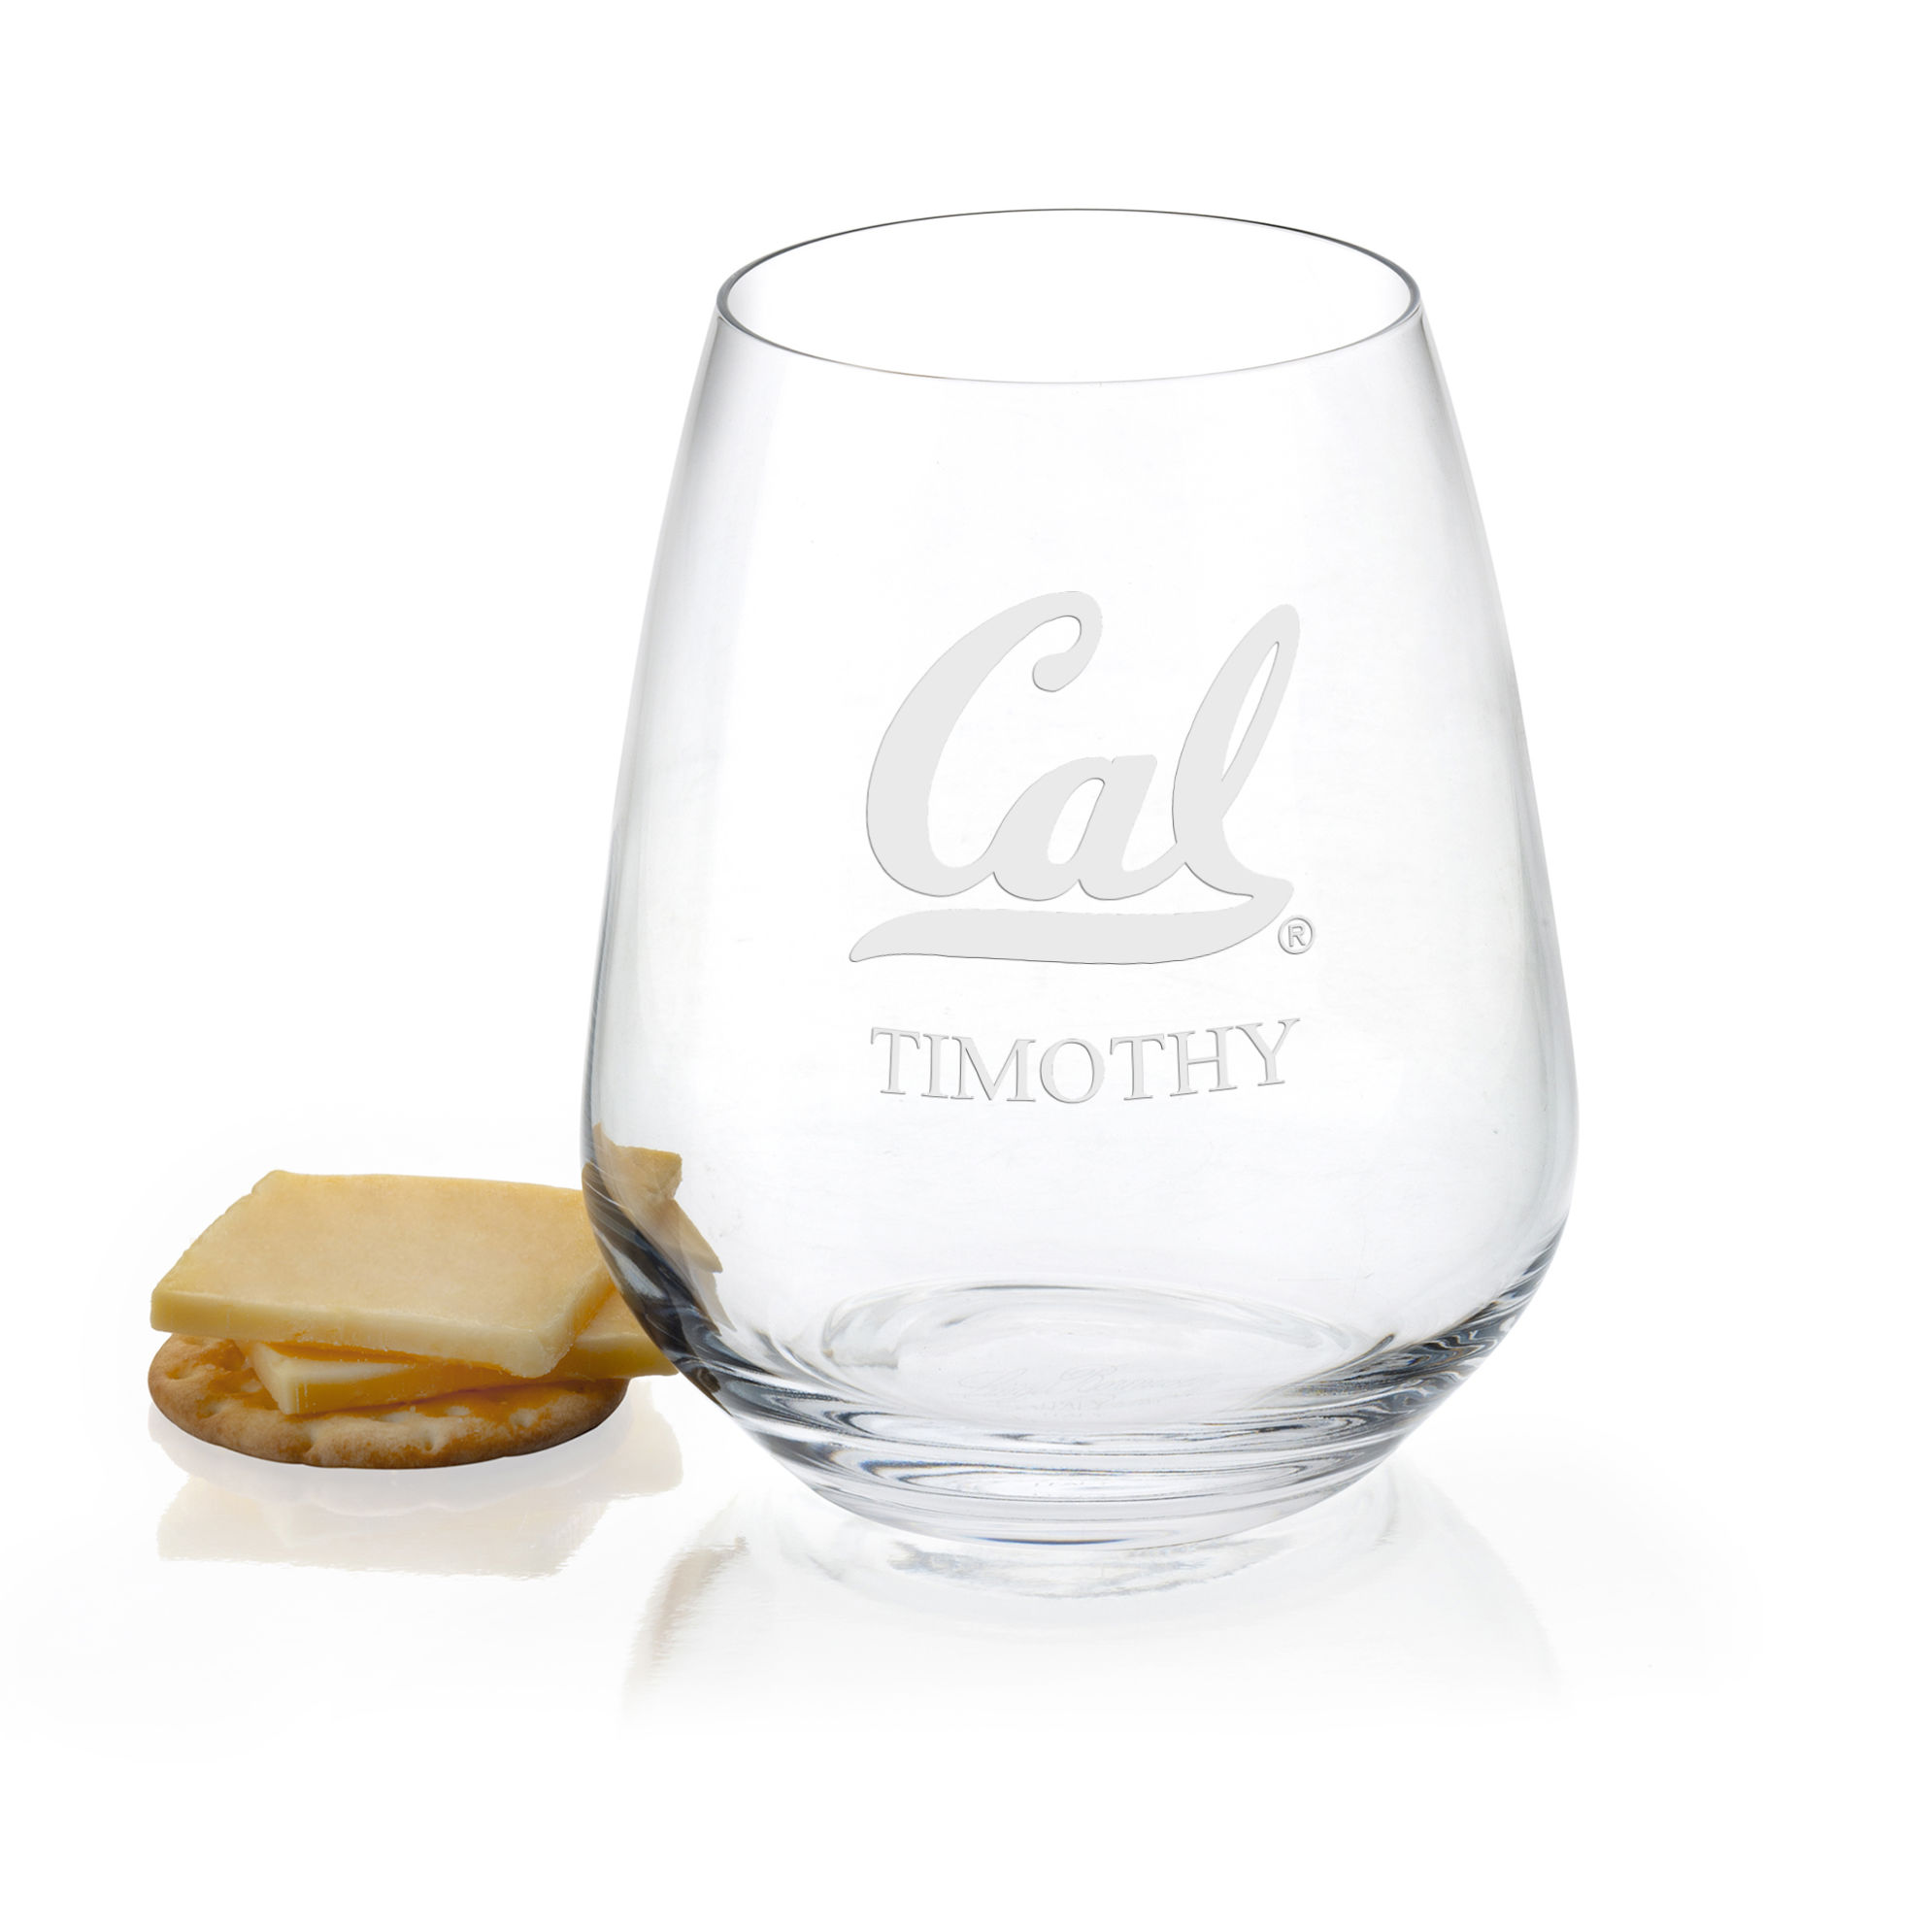 Berkeley Stemless Wine Glasses - Set of 2